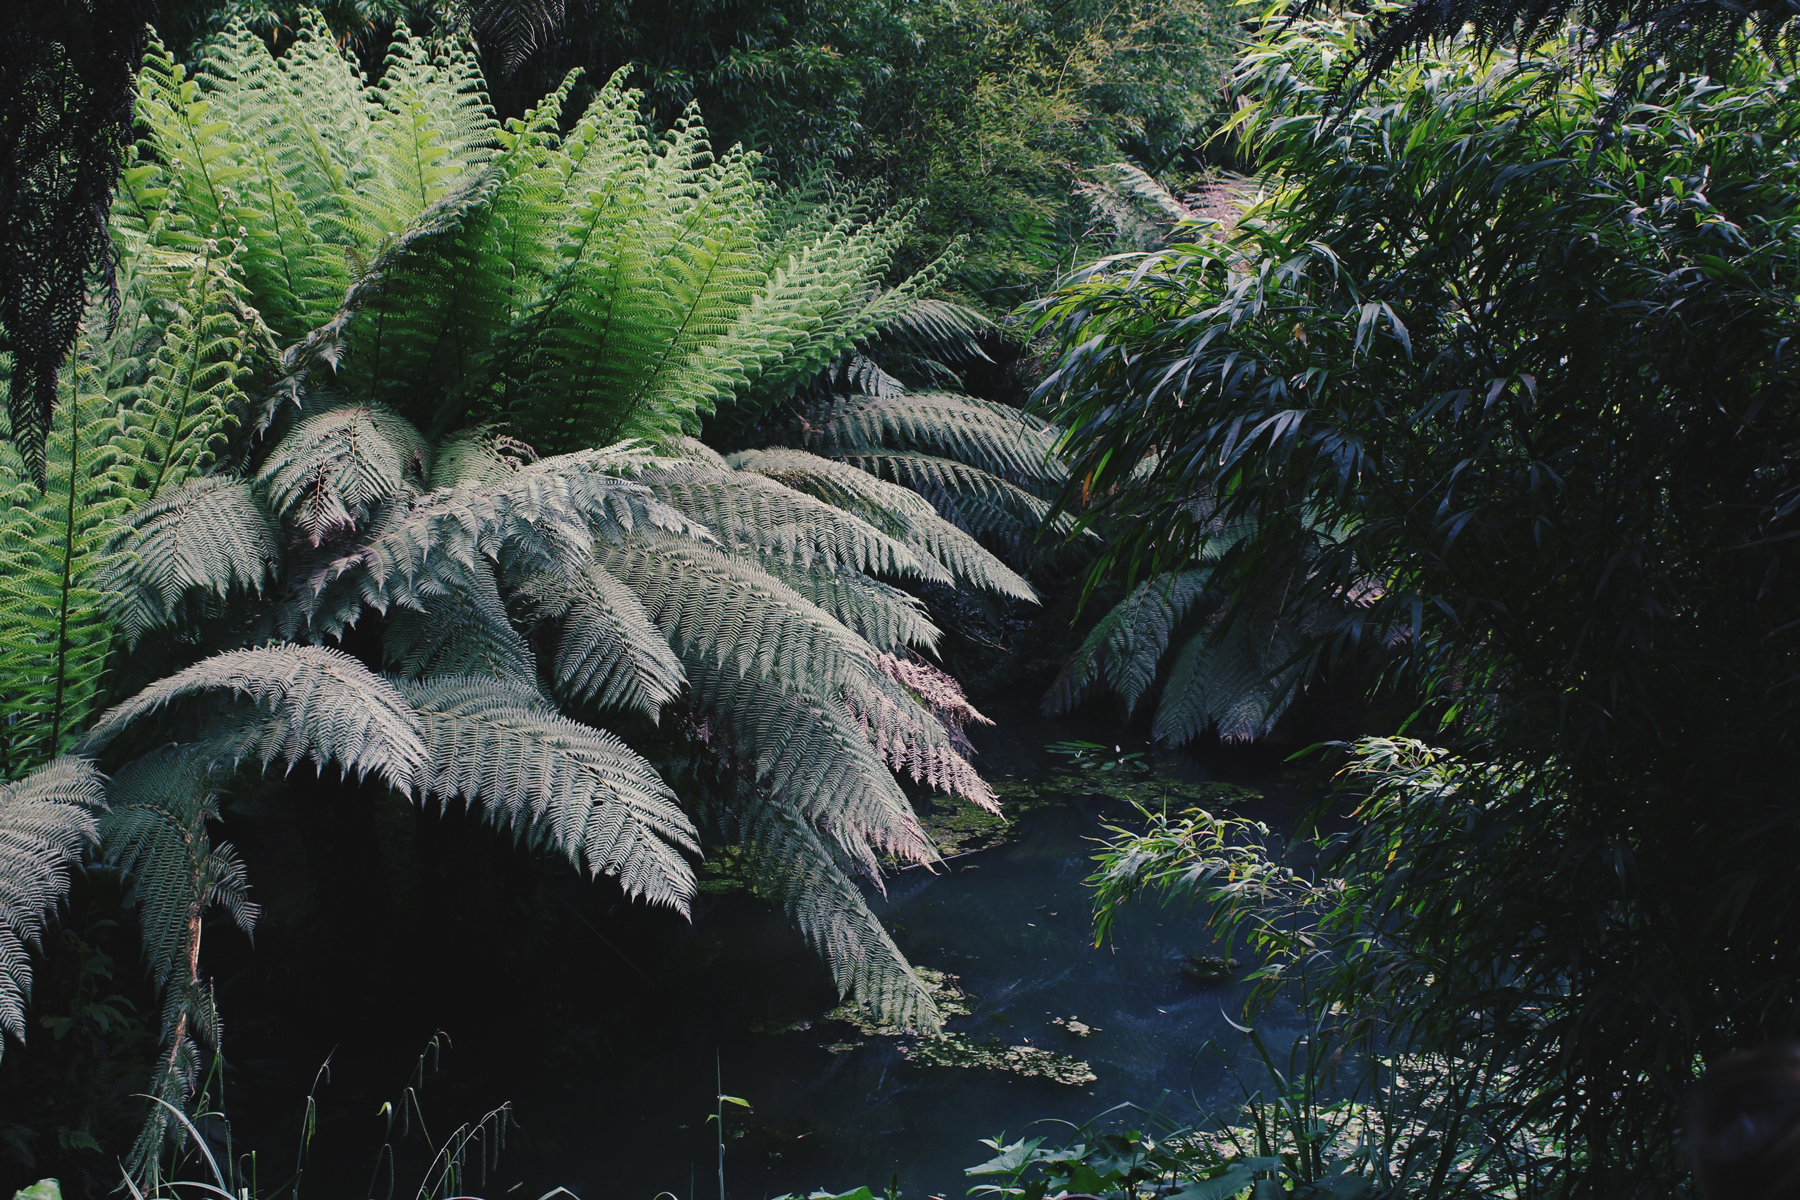 Ferns at the Lost Gardens of Heligan, Cornwall